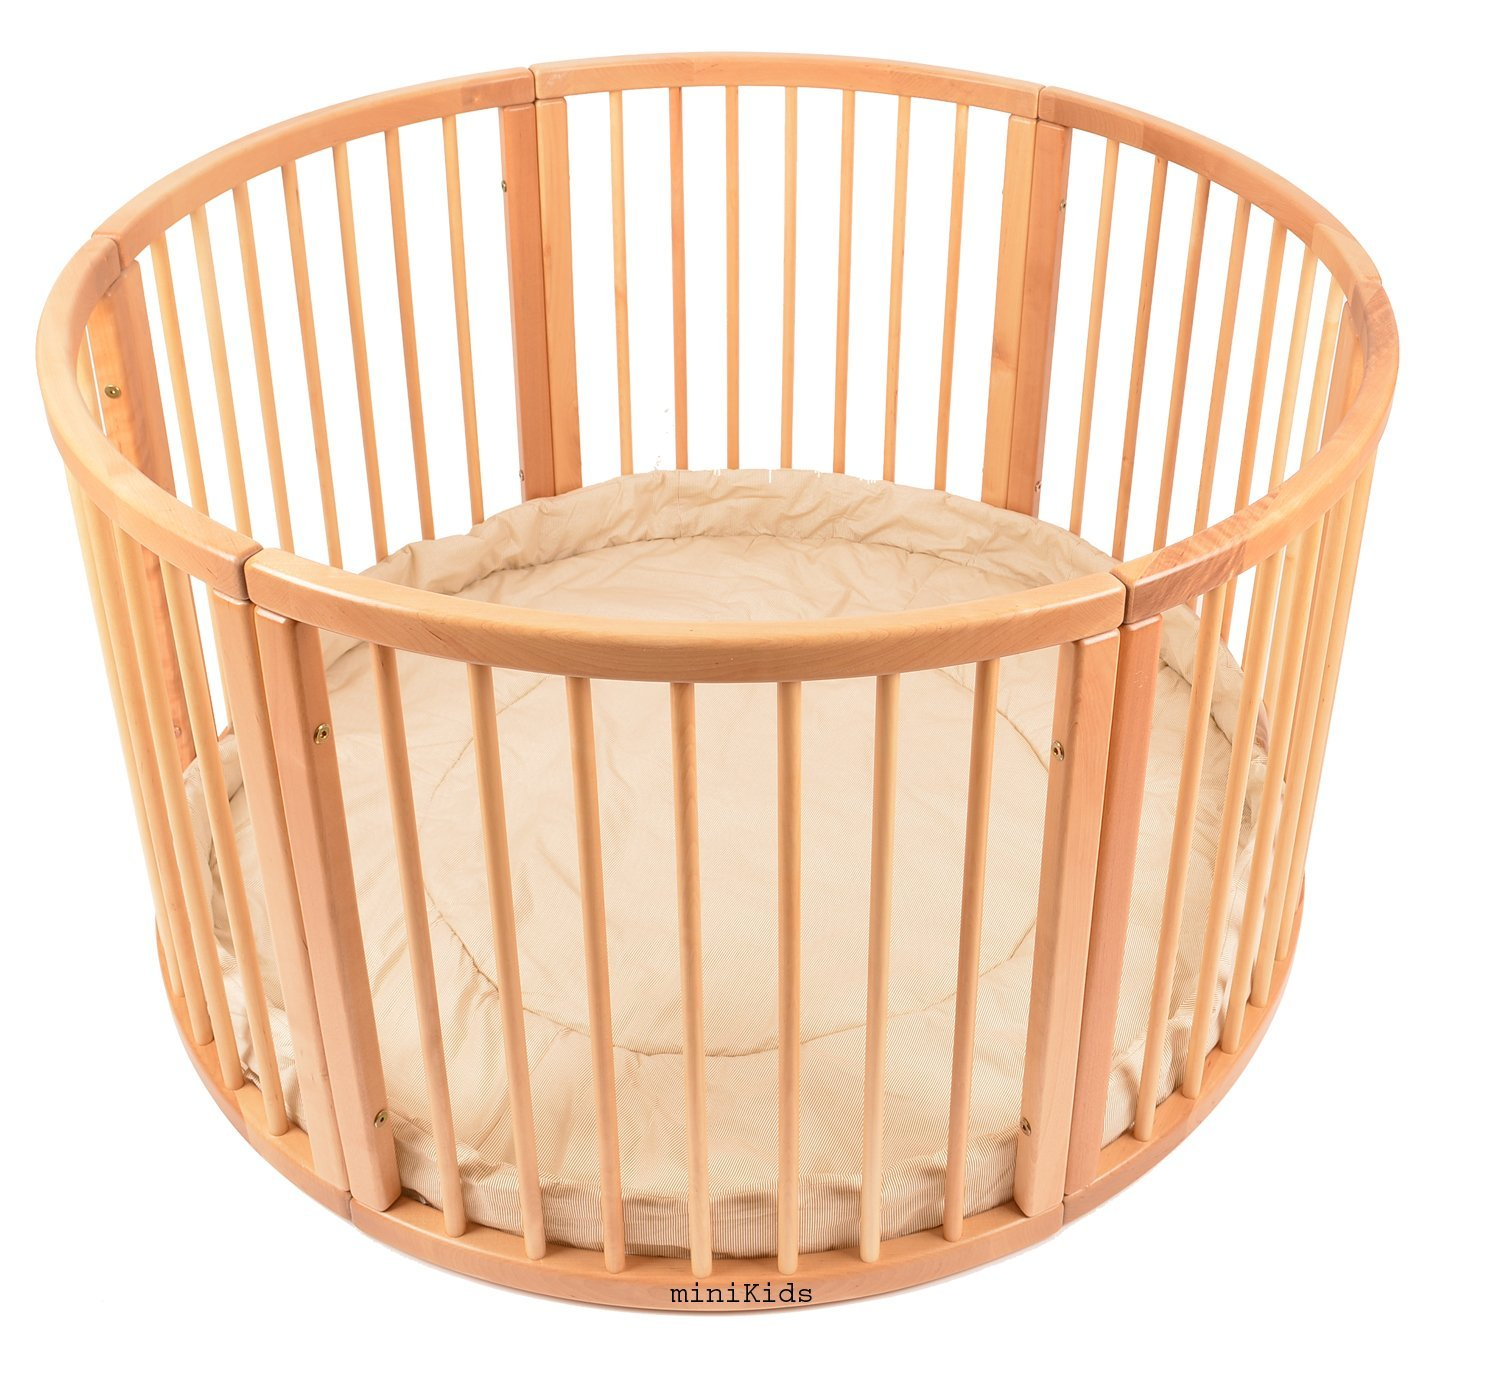 VERY LARGE WOODEN BABY PLAYPEN (Ø 120cm) WITH PLAYMAT (Stripes) miniKids Height 70 cm approx; Ø 120cm Playpen from ALANEL MADE IN EUROPE including Playmat 1